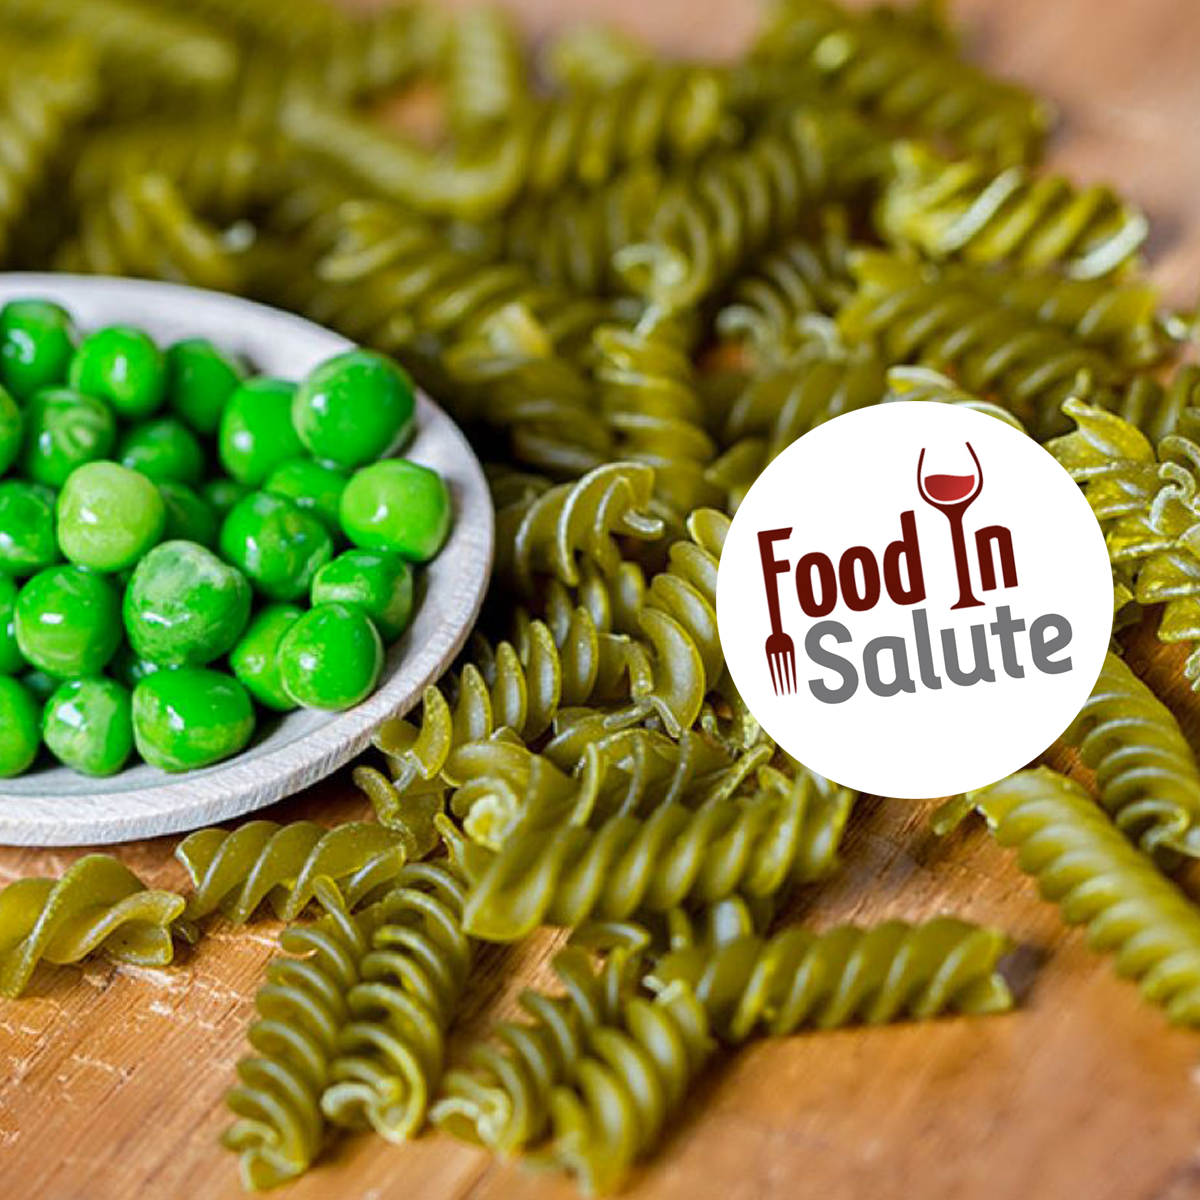 FOOD IN SALUTE - PASTA DI LEGUMI